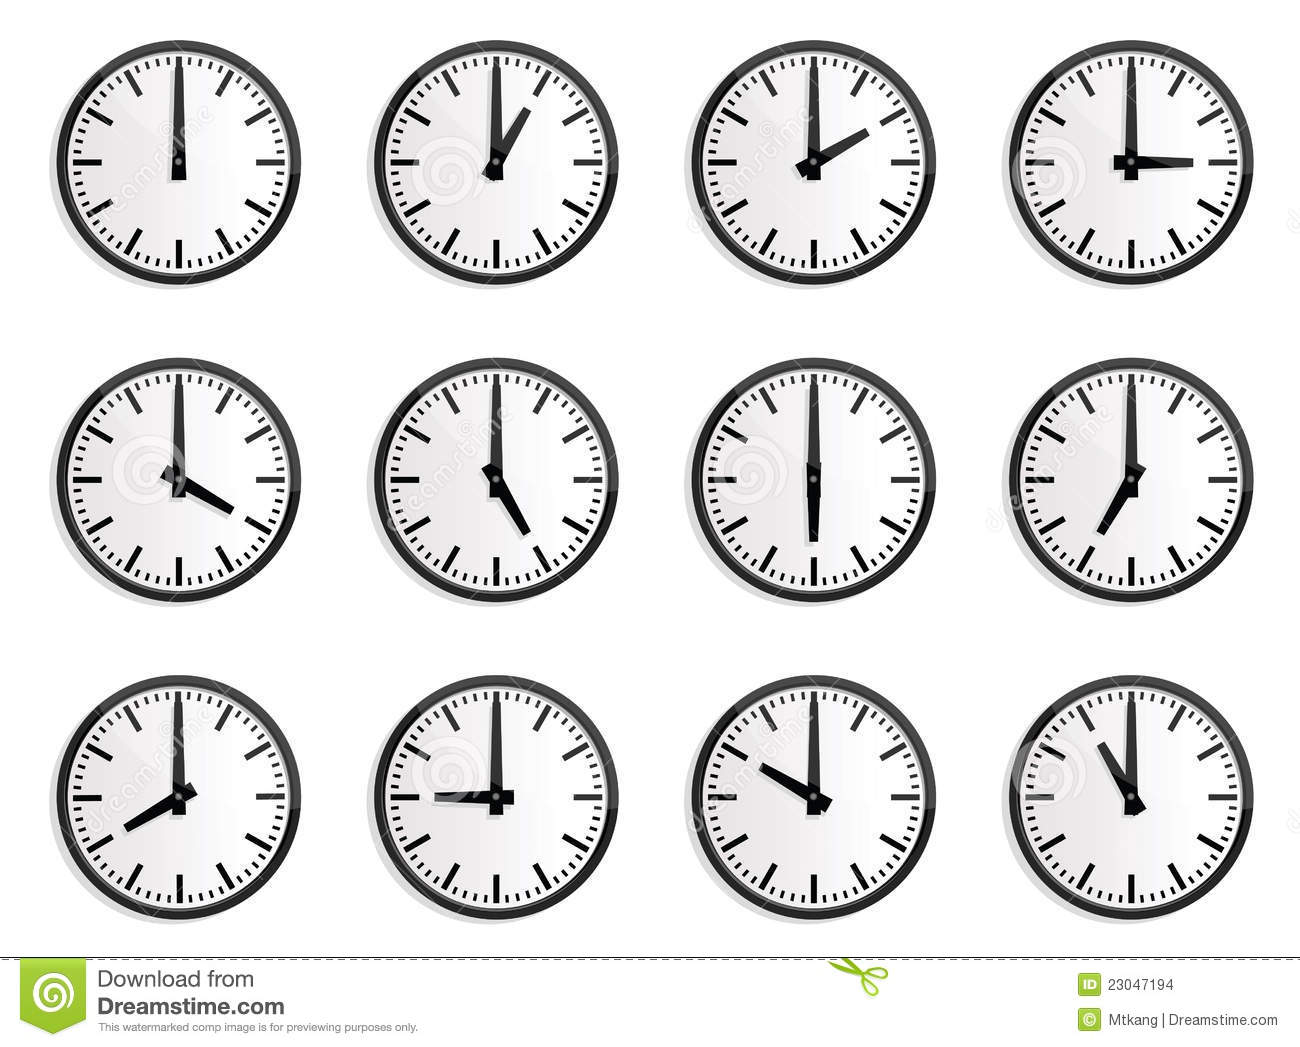 World time zone wall clock stock vector image 23047194 royalty free stock photo download world time zone wall clock amipublicfo Choice Image